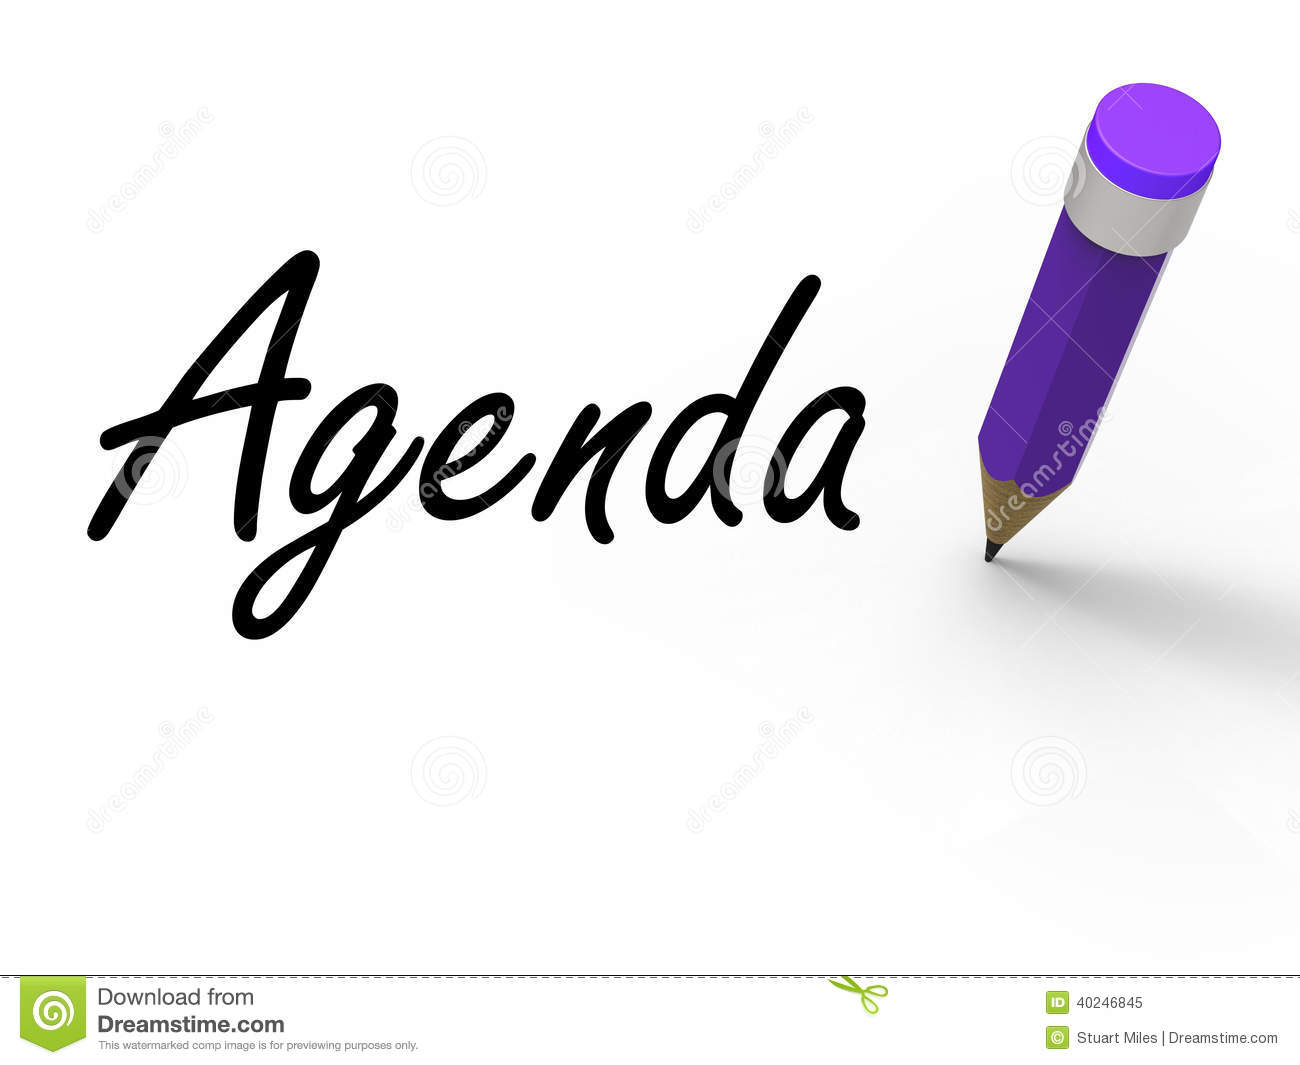 agenda with pencil means written agendas stock agenda clip art free agenda clipart icon